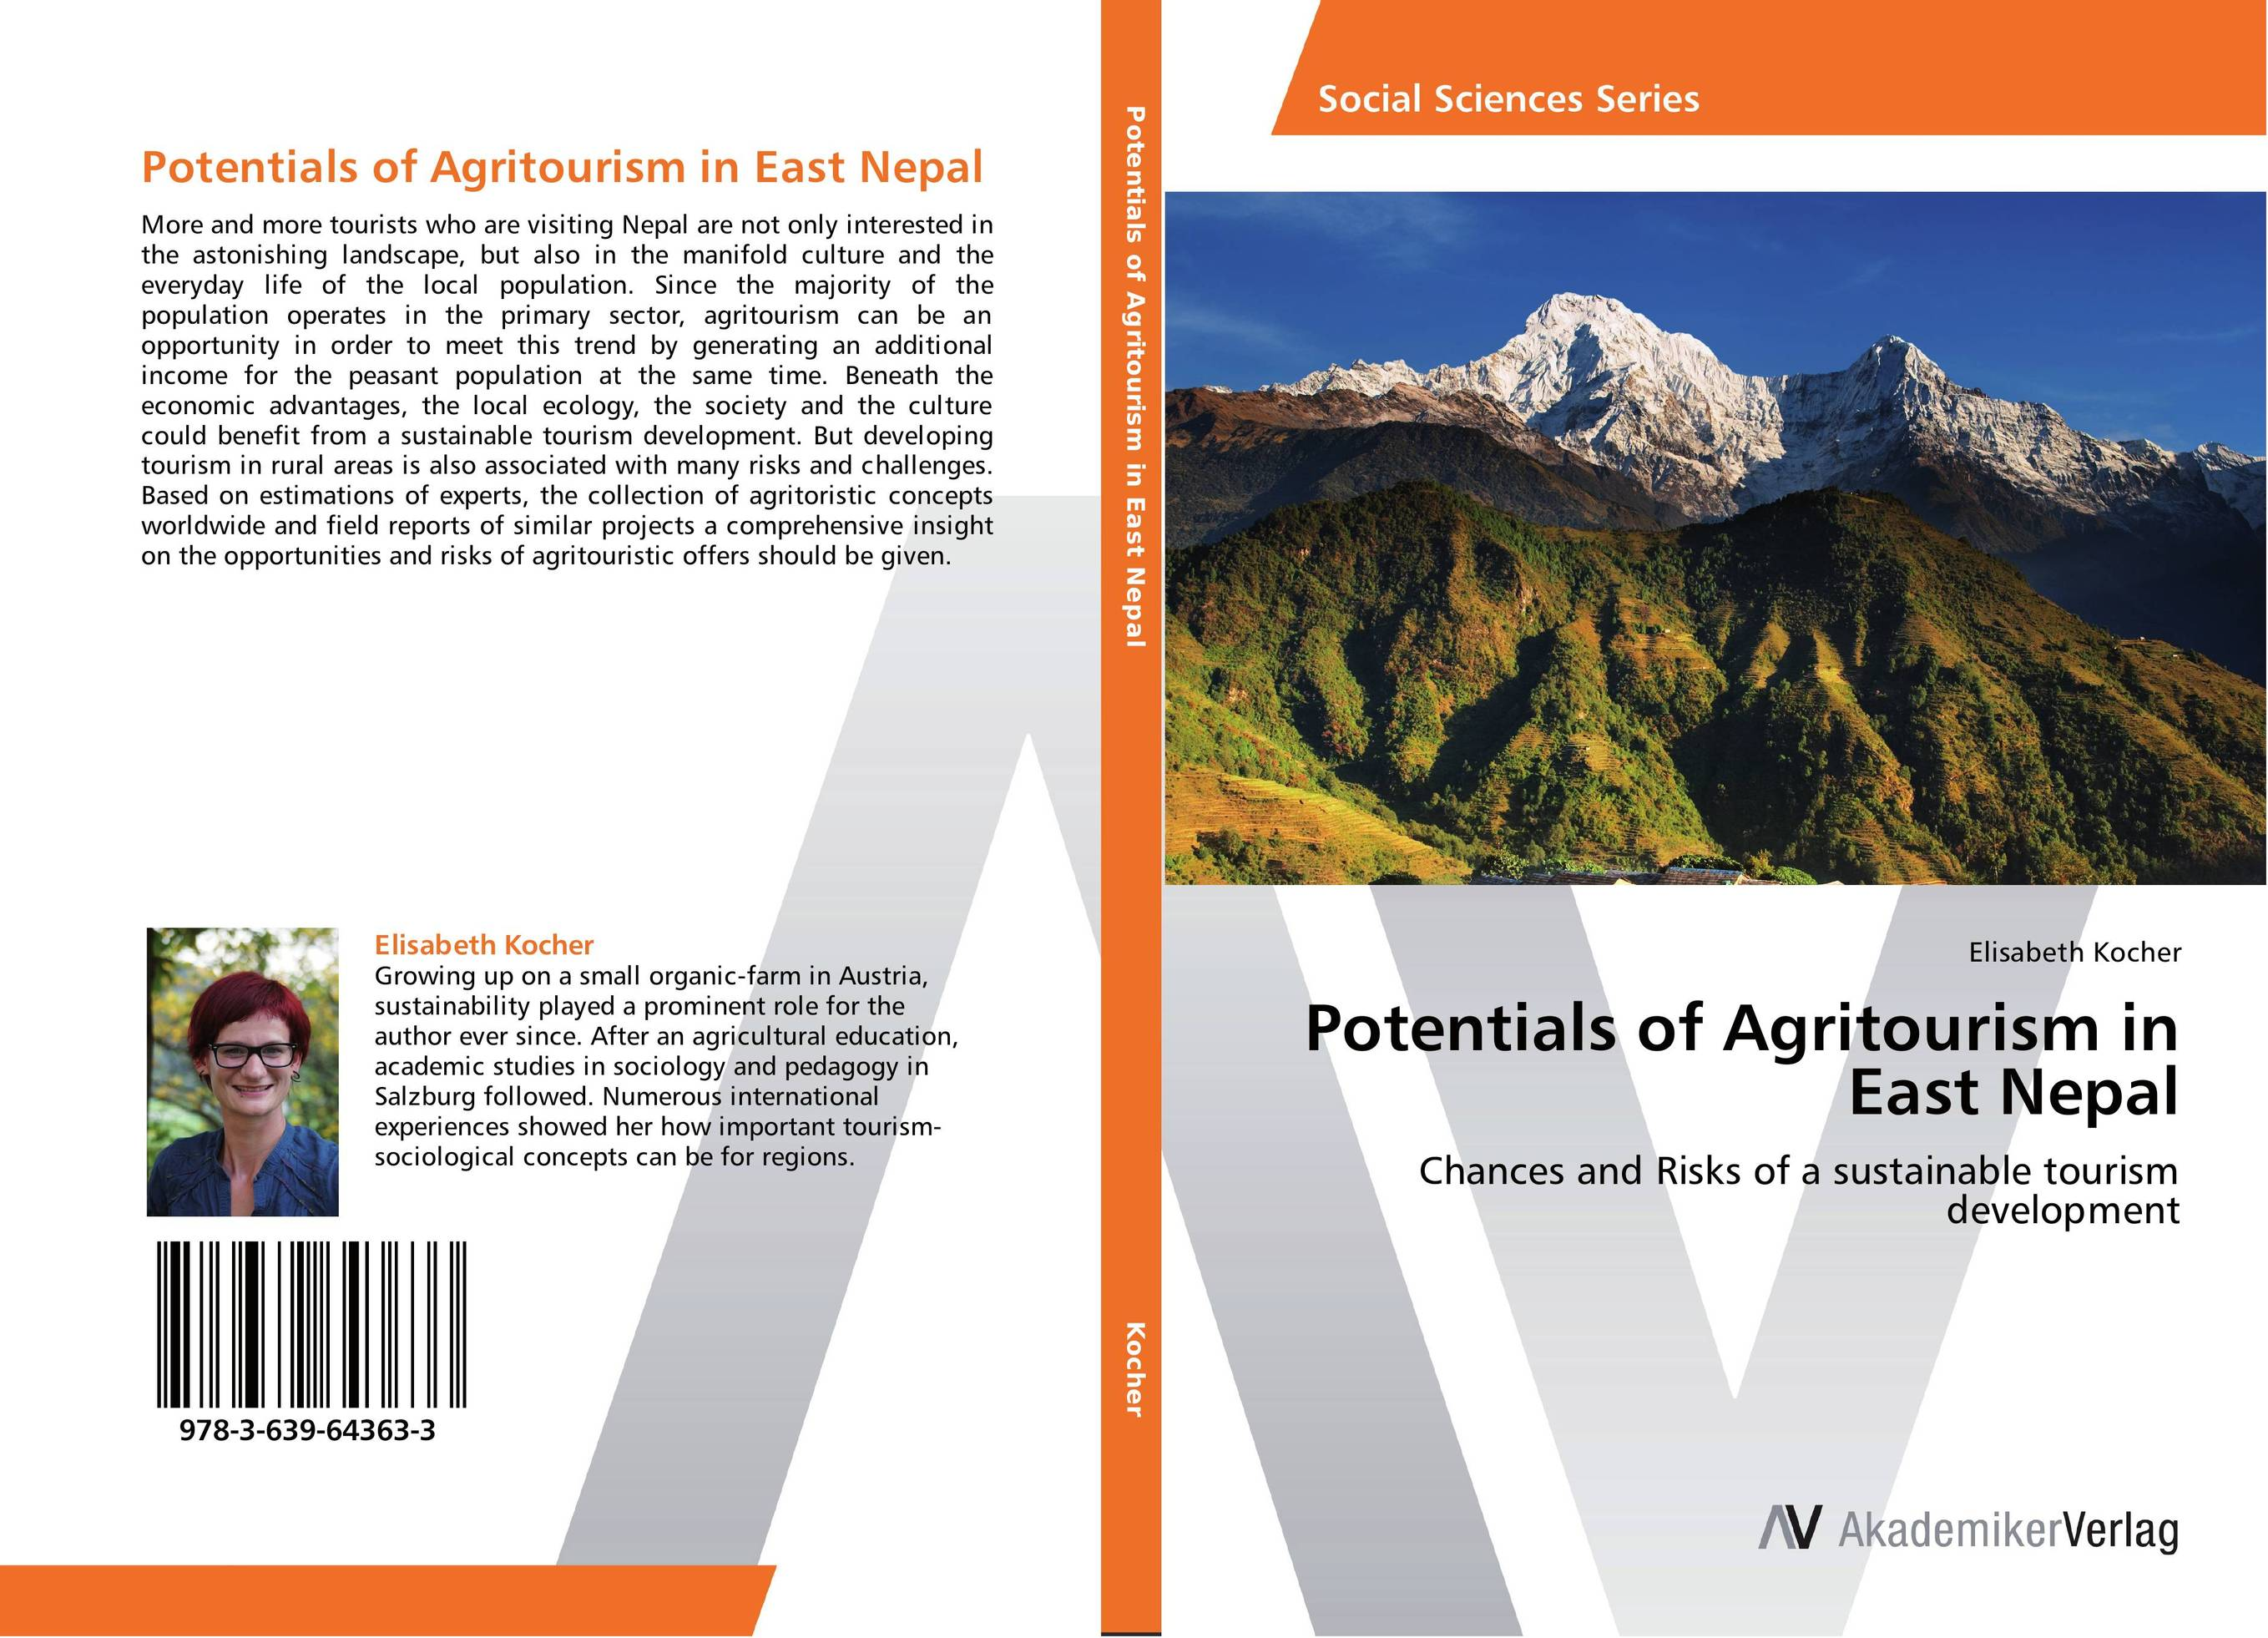 Potentials of Agritourism in East Nepal